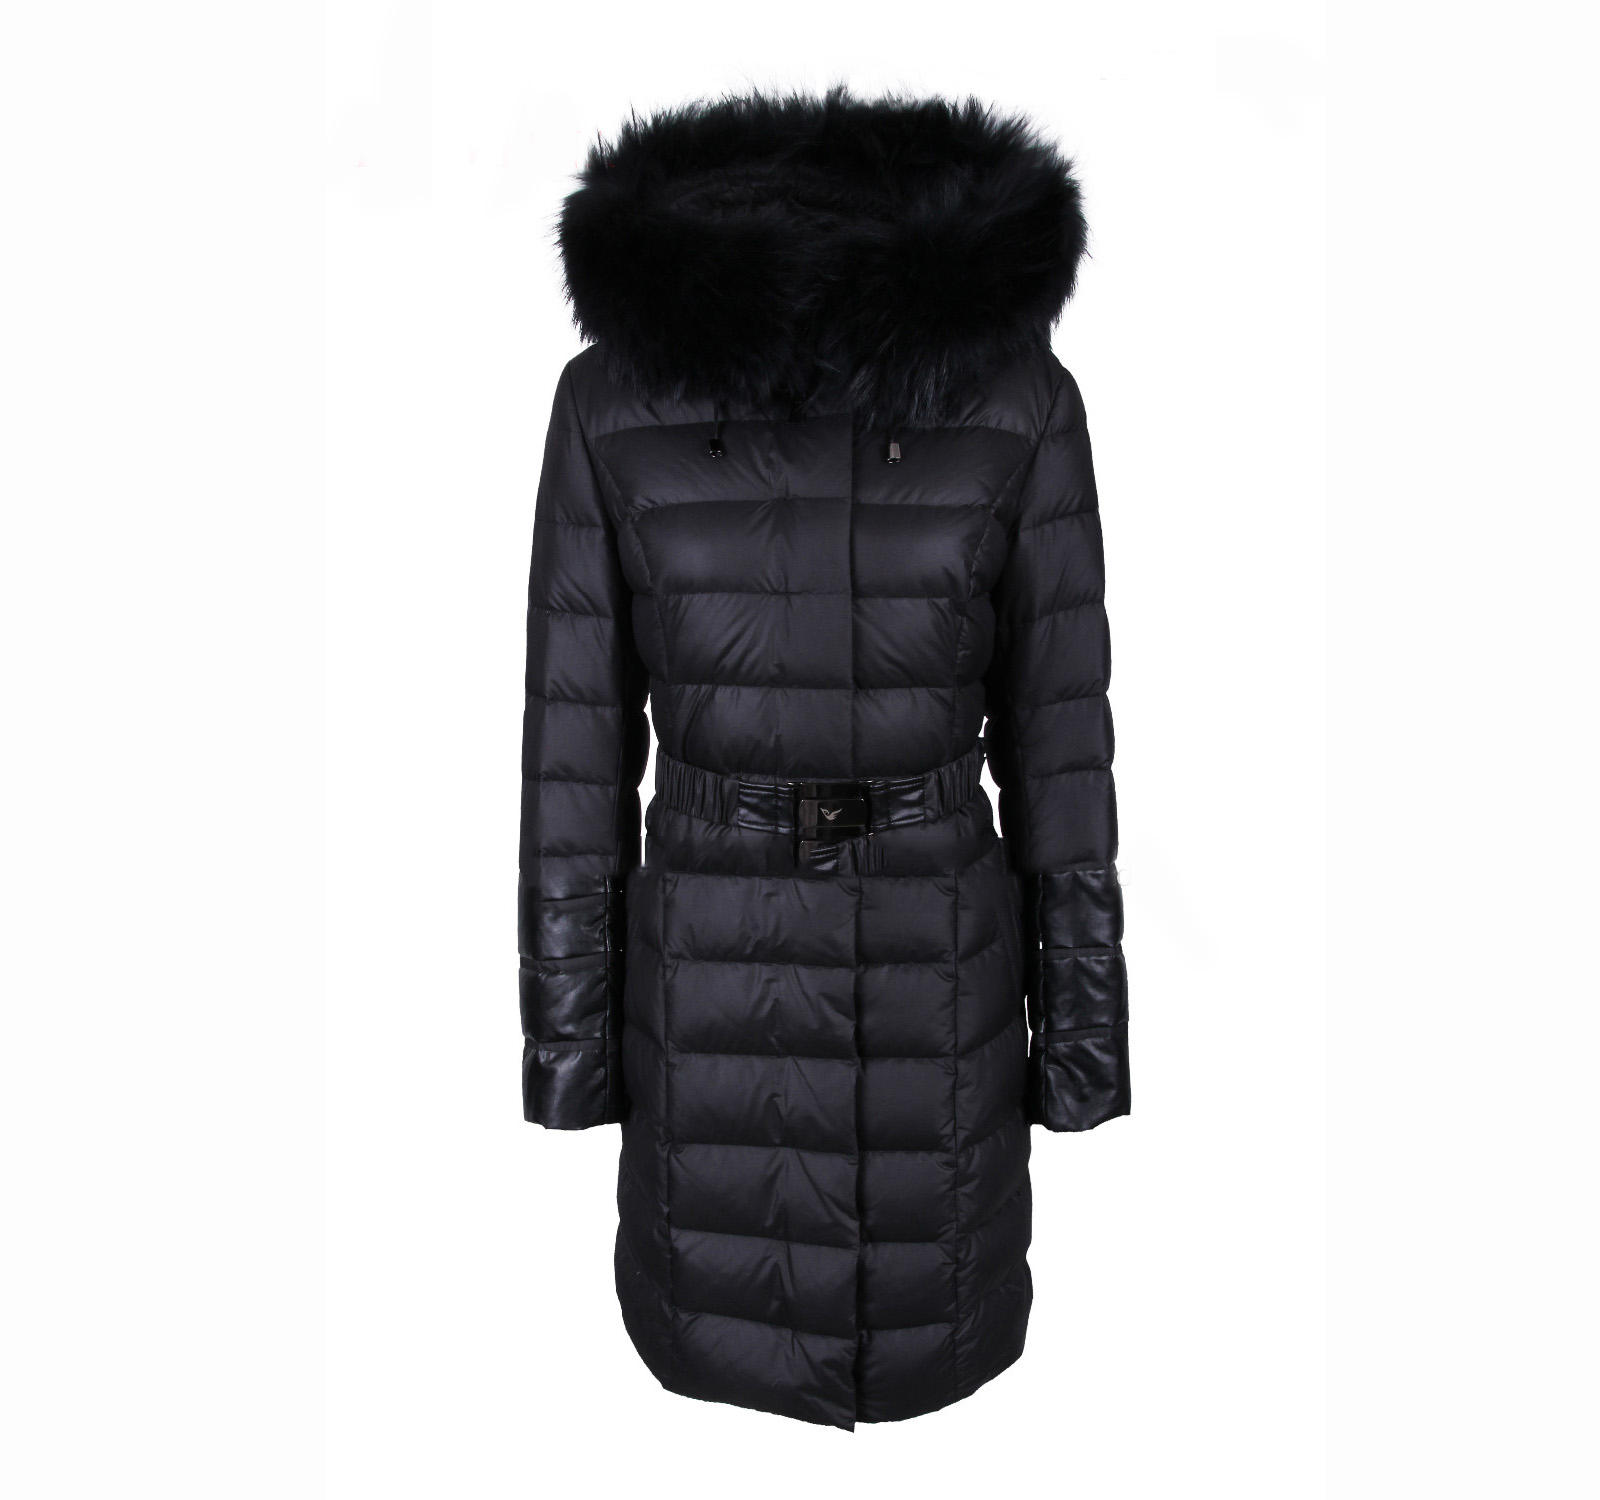 Women's winter down puffer coat with hooded real fur